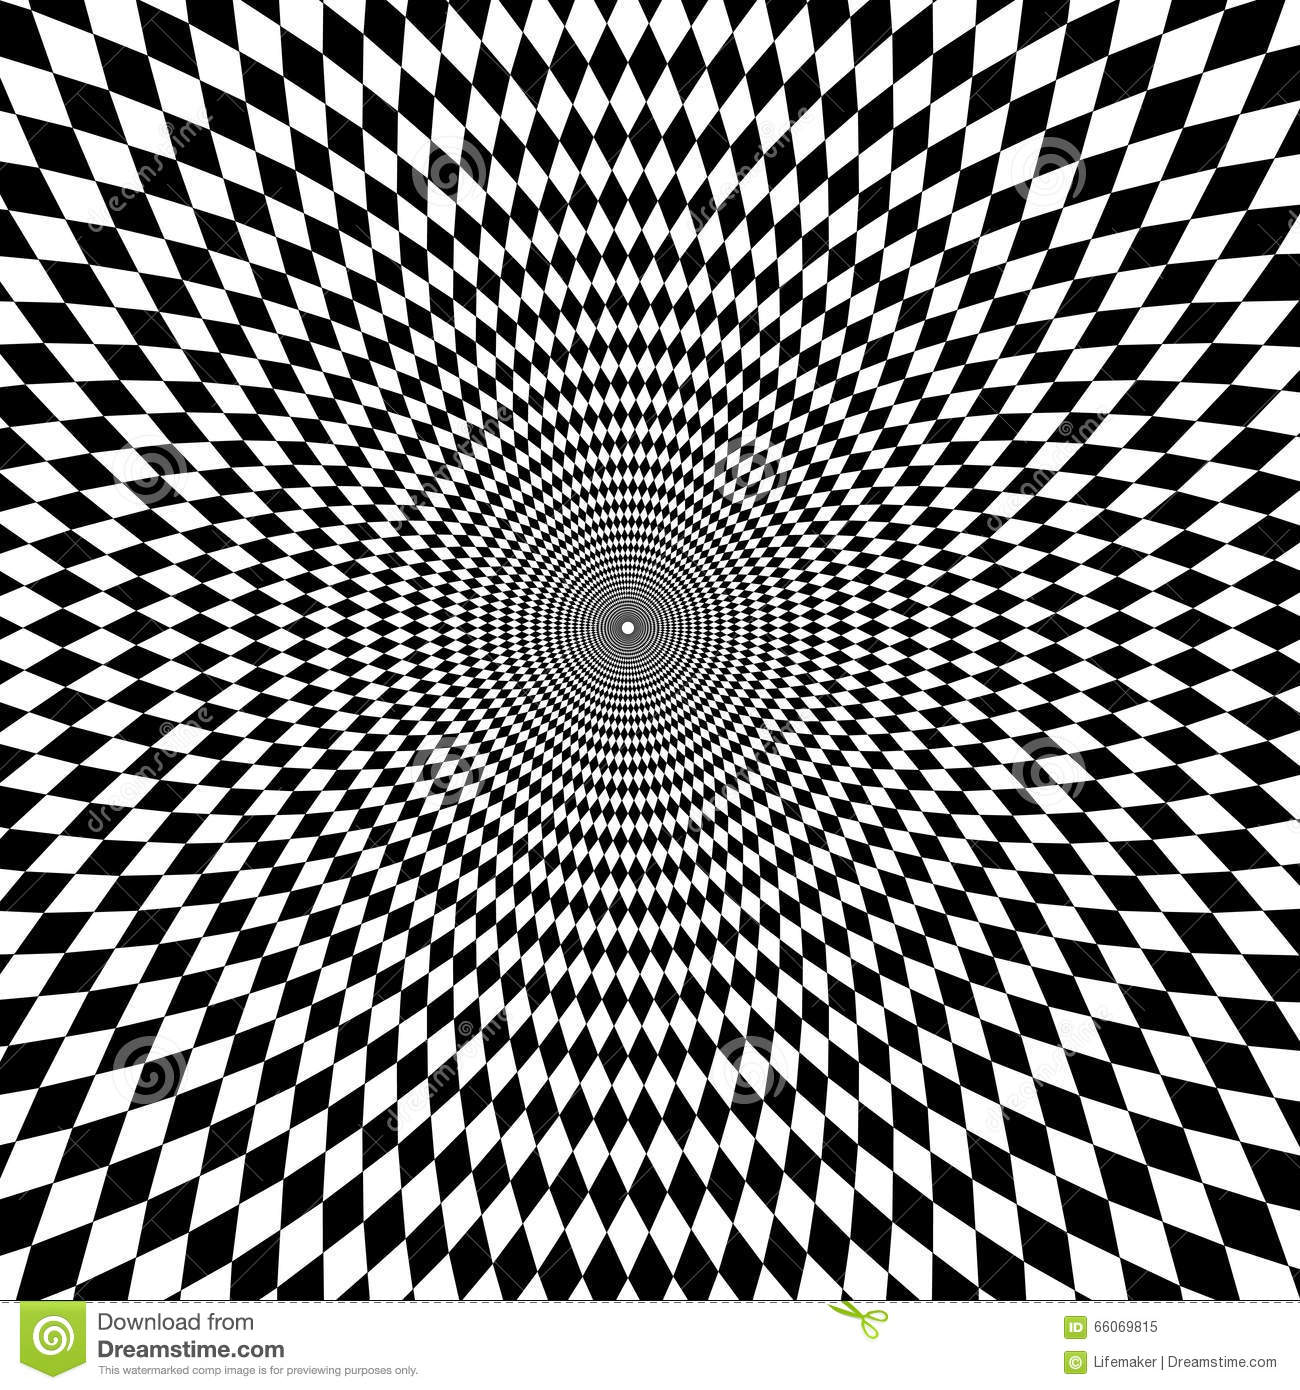 Optical illusion zoom black and white background